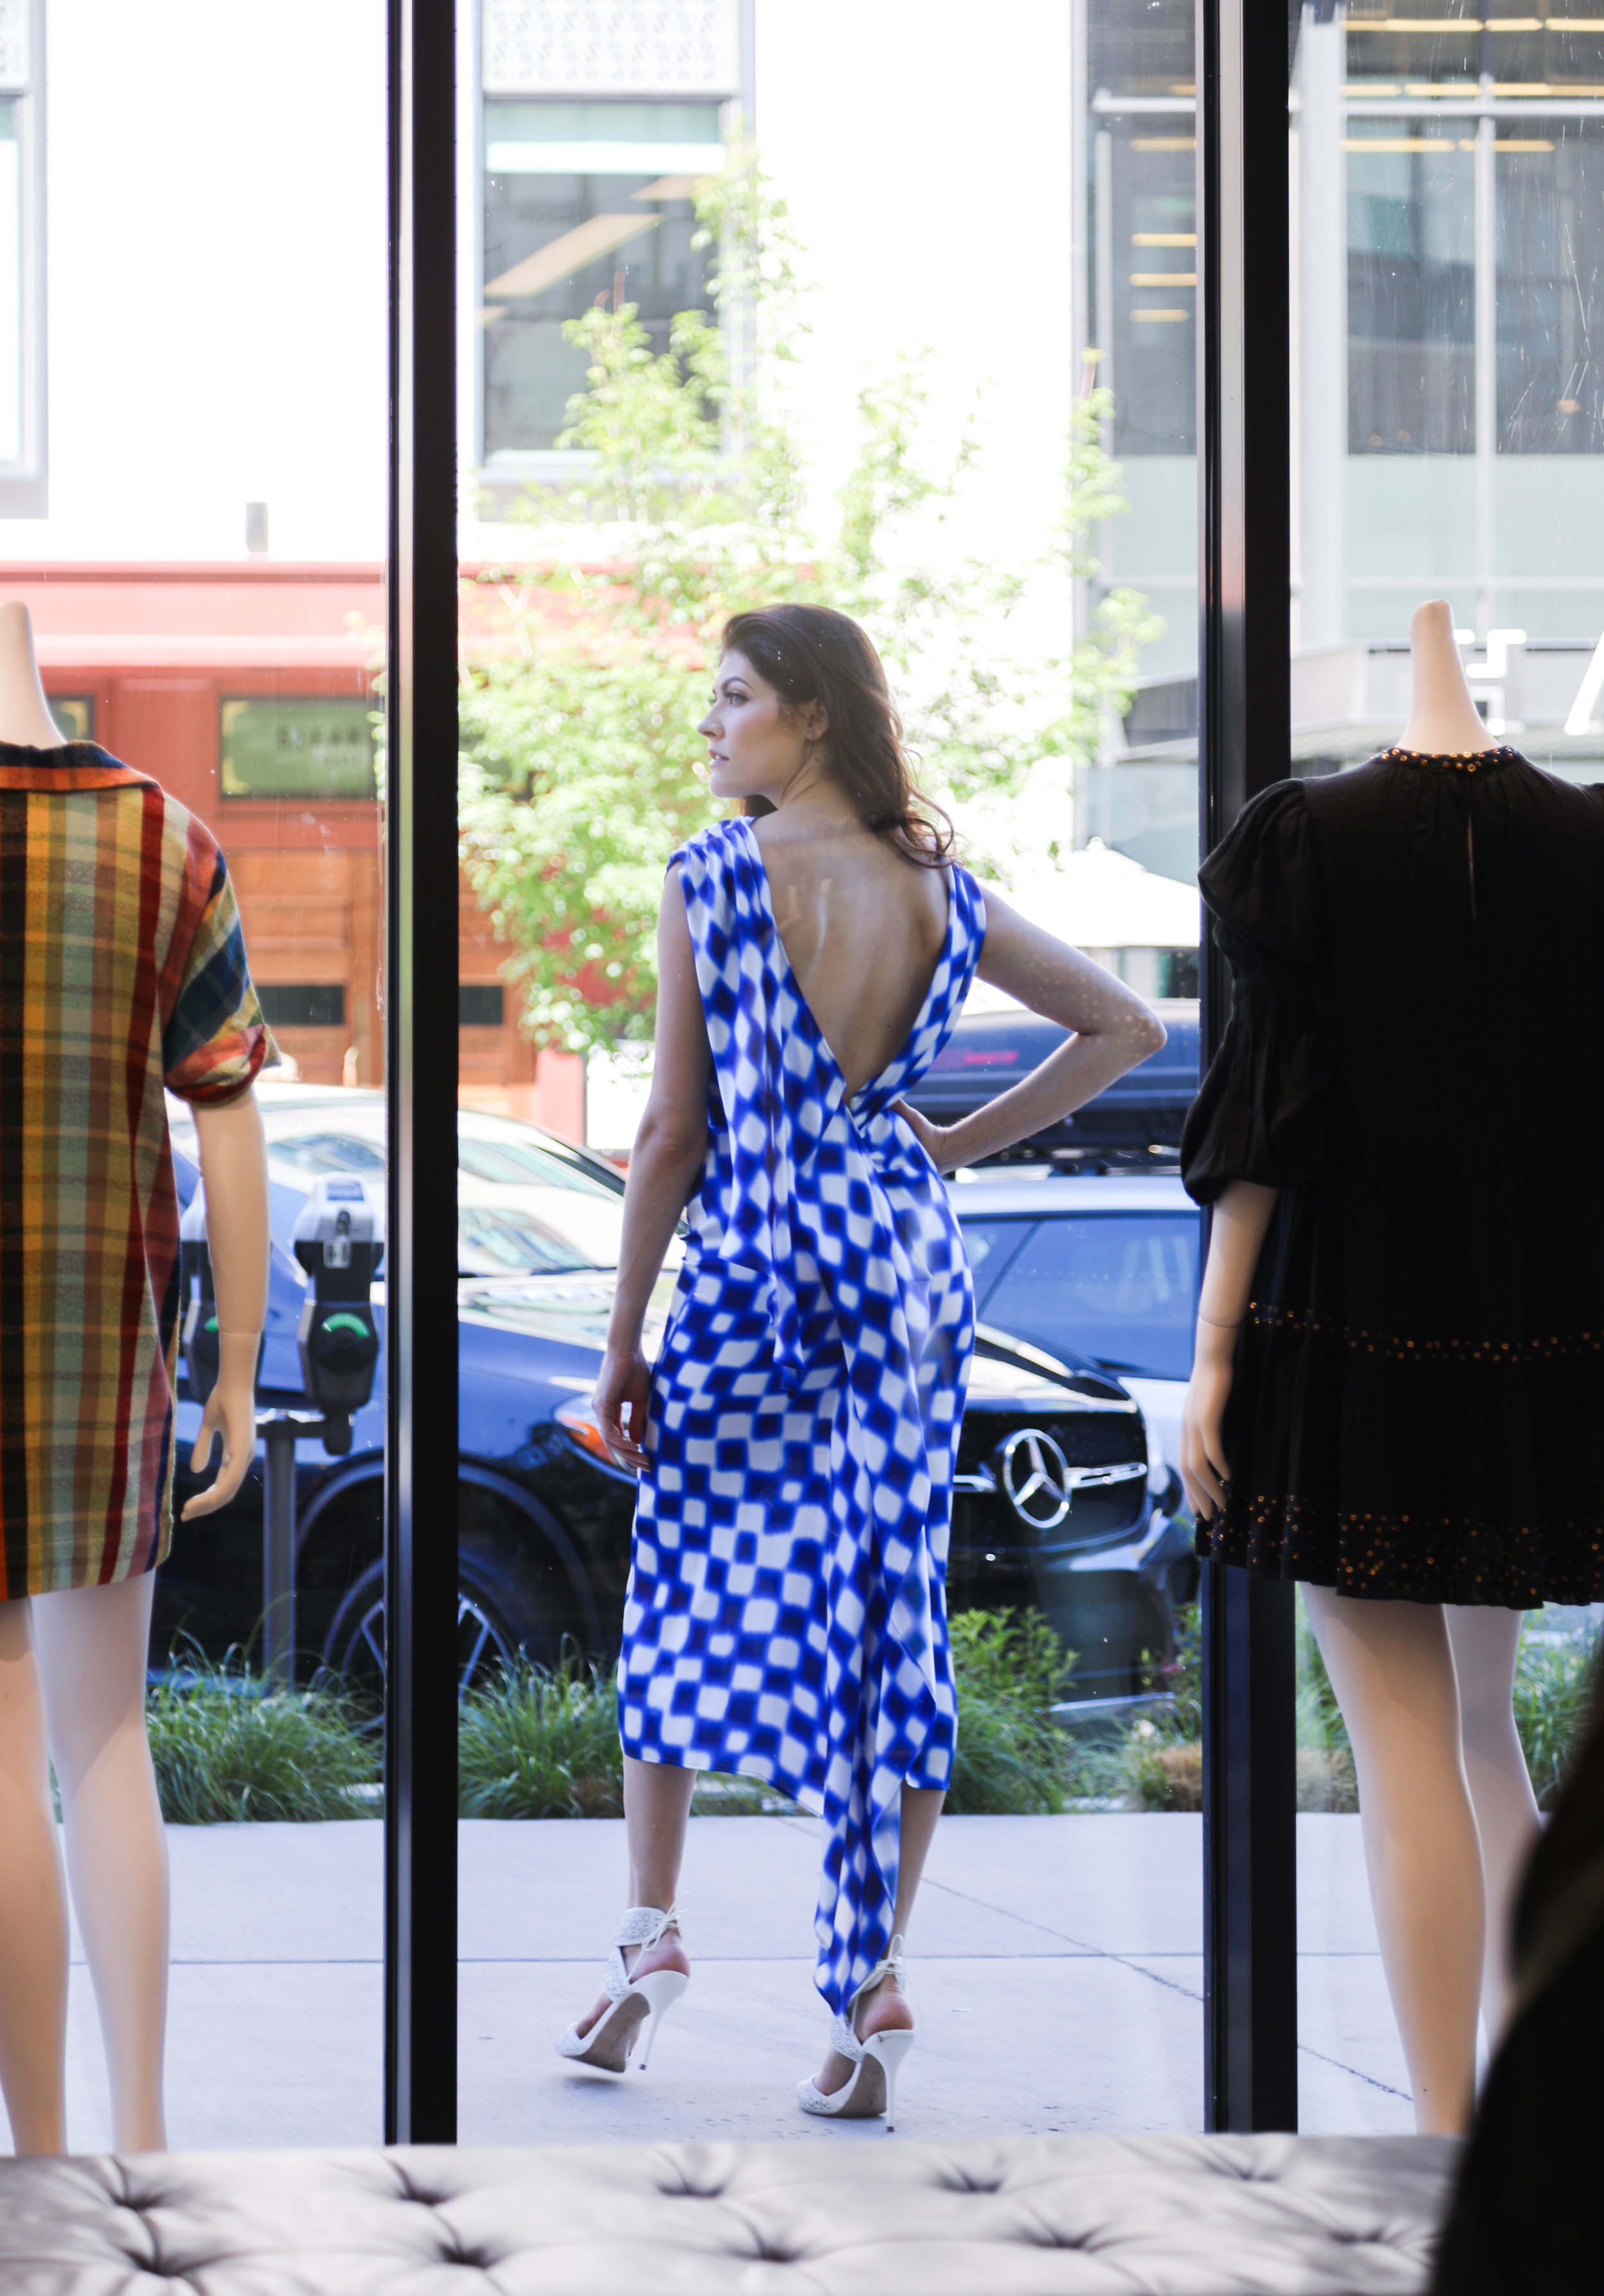 The view from inside Max Clothing Store of Hailey on Columbine Street wearing a Dries Van Noten dress.